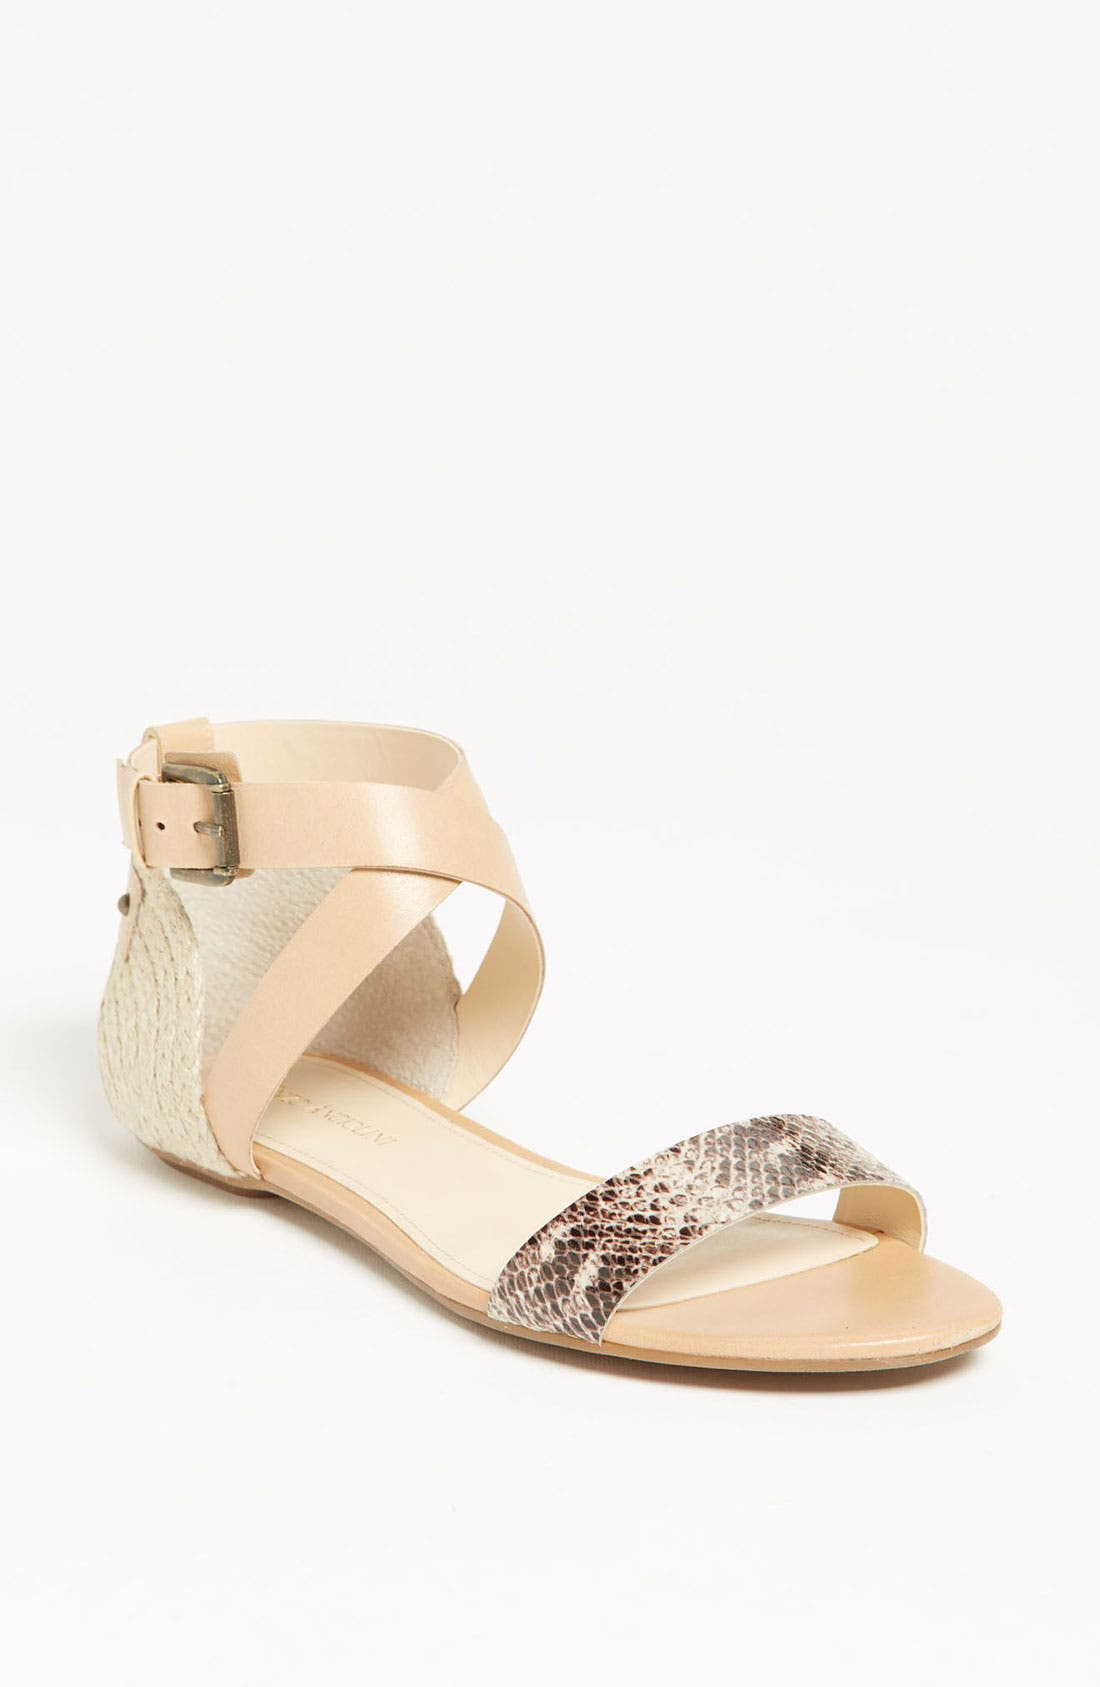 Alternate Image 1 Selected - Enzo Angiolini 'Katira' Sandal (Special Purchase)